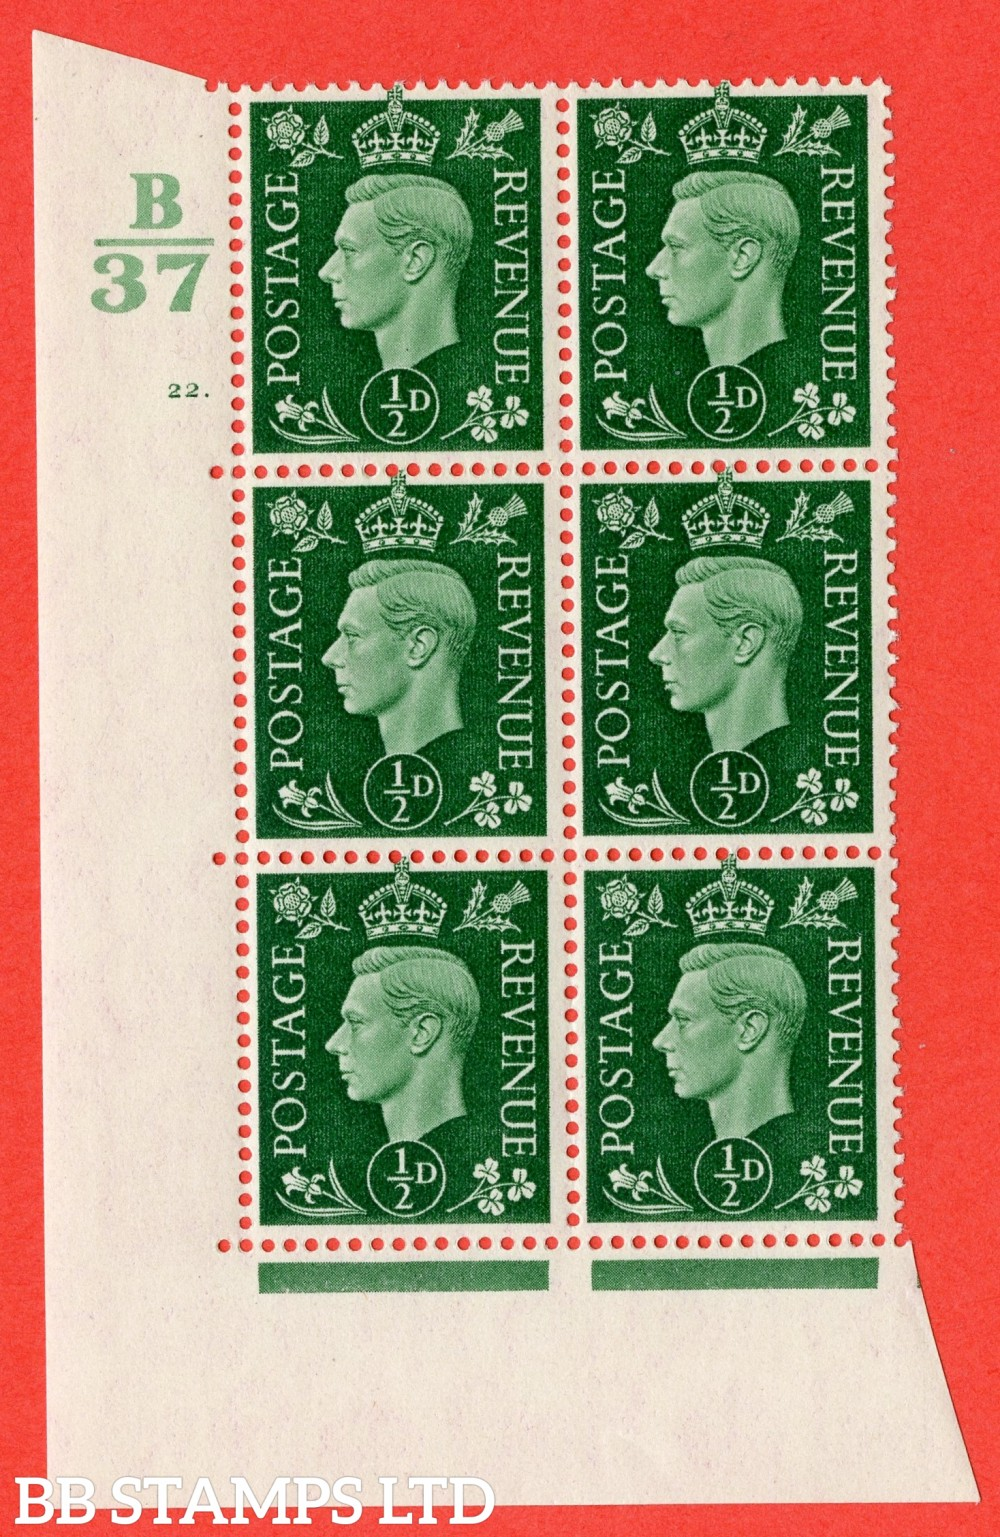 "SG. 462. Q1. ½d Green. A superb UNMOUNTED MINT "" Control B37 cylinder 22 dot "" block of 6 with perf type 5 E/I with marginal rule."